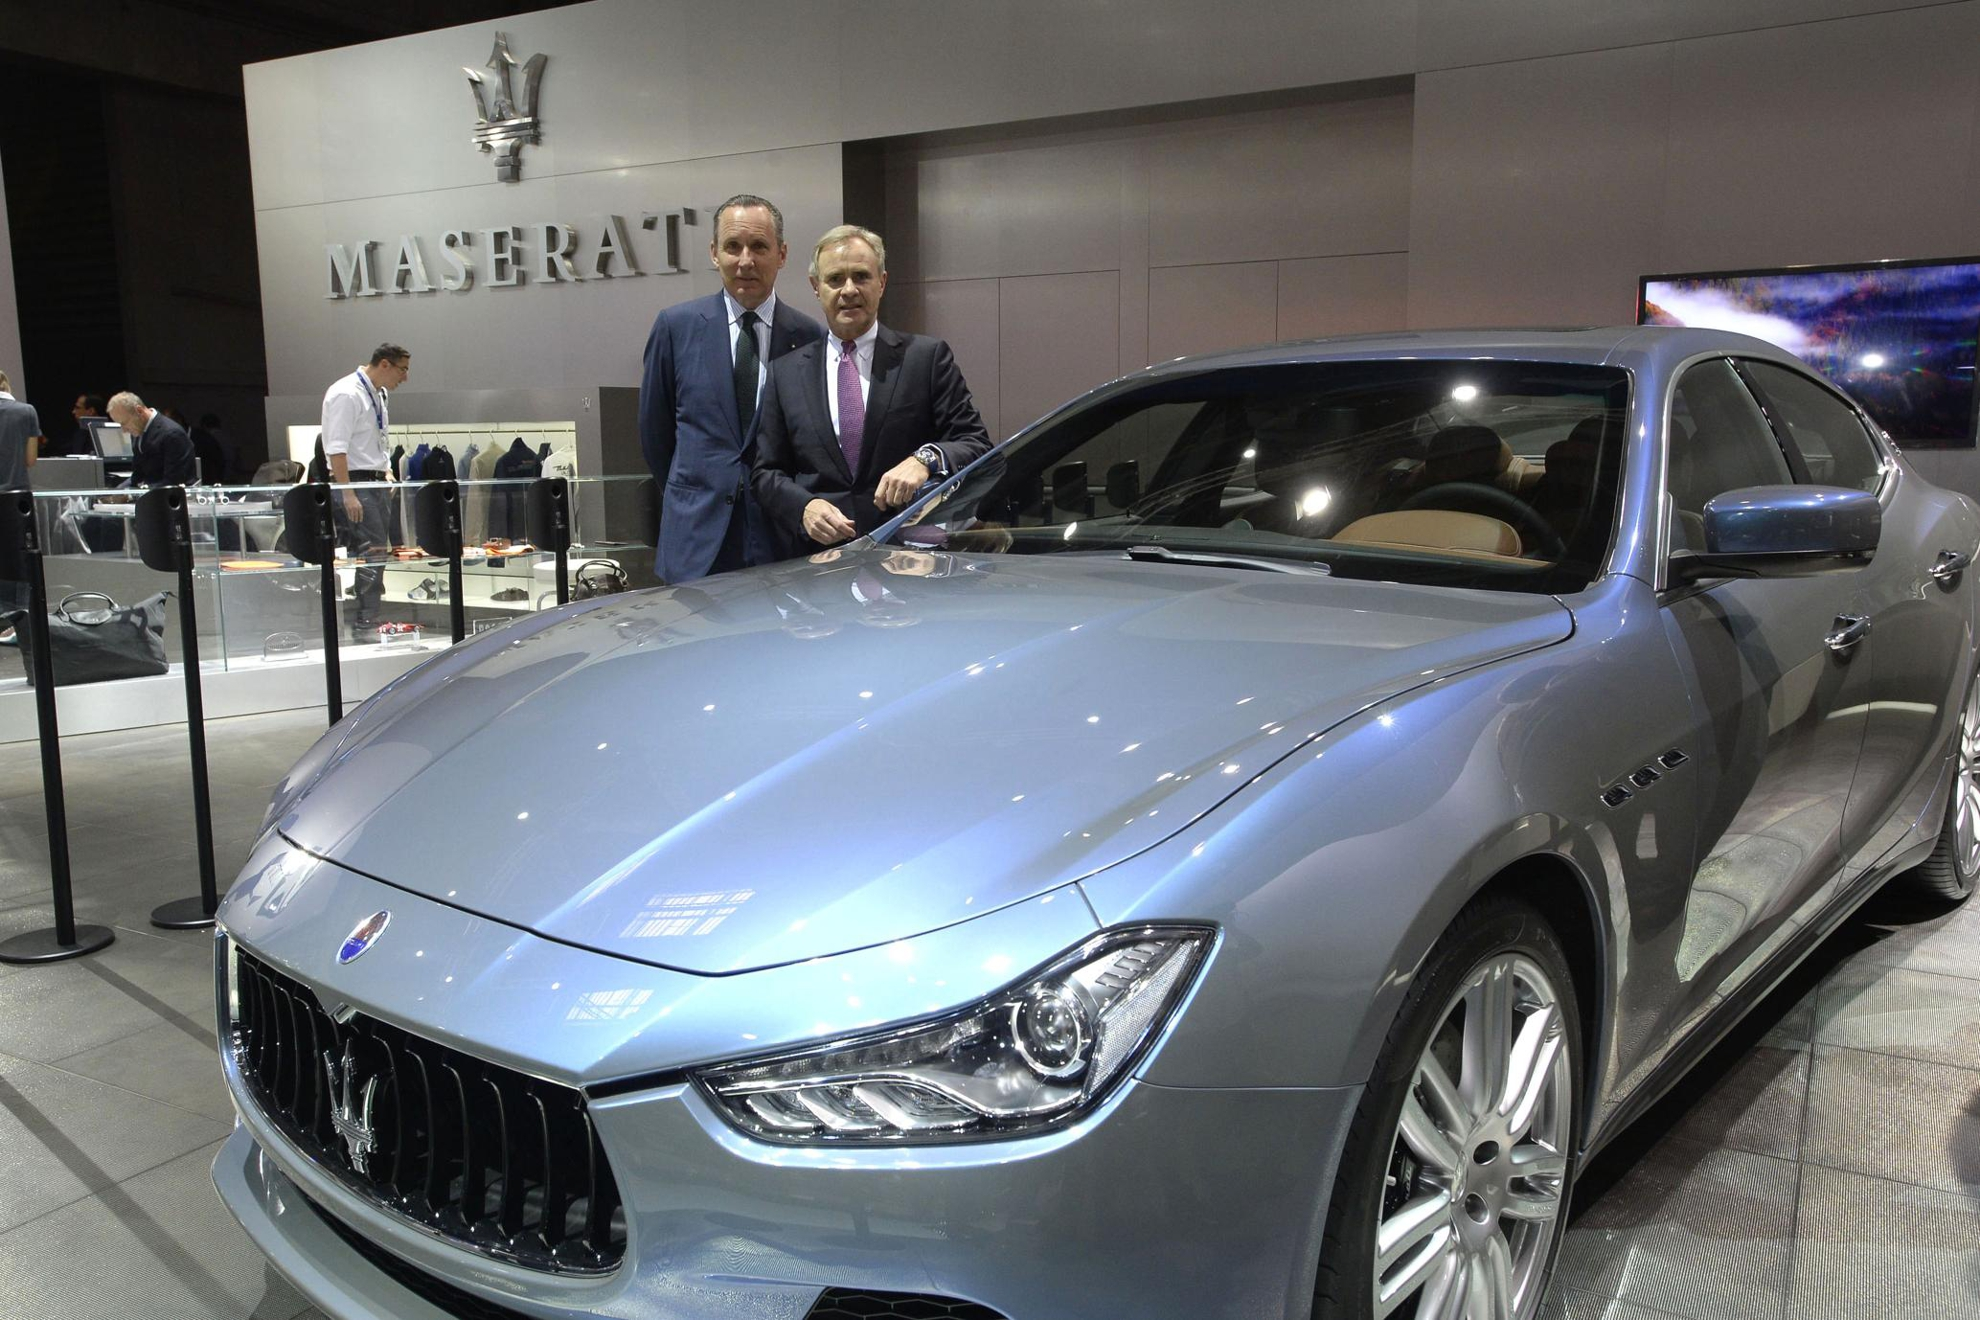 https://3d-car-shows.com/wp-content/uploads/2014/10/Maserati-Ghibli.jpg